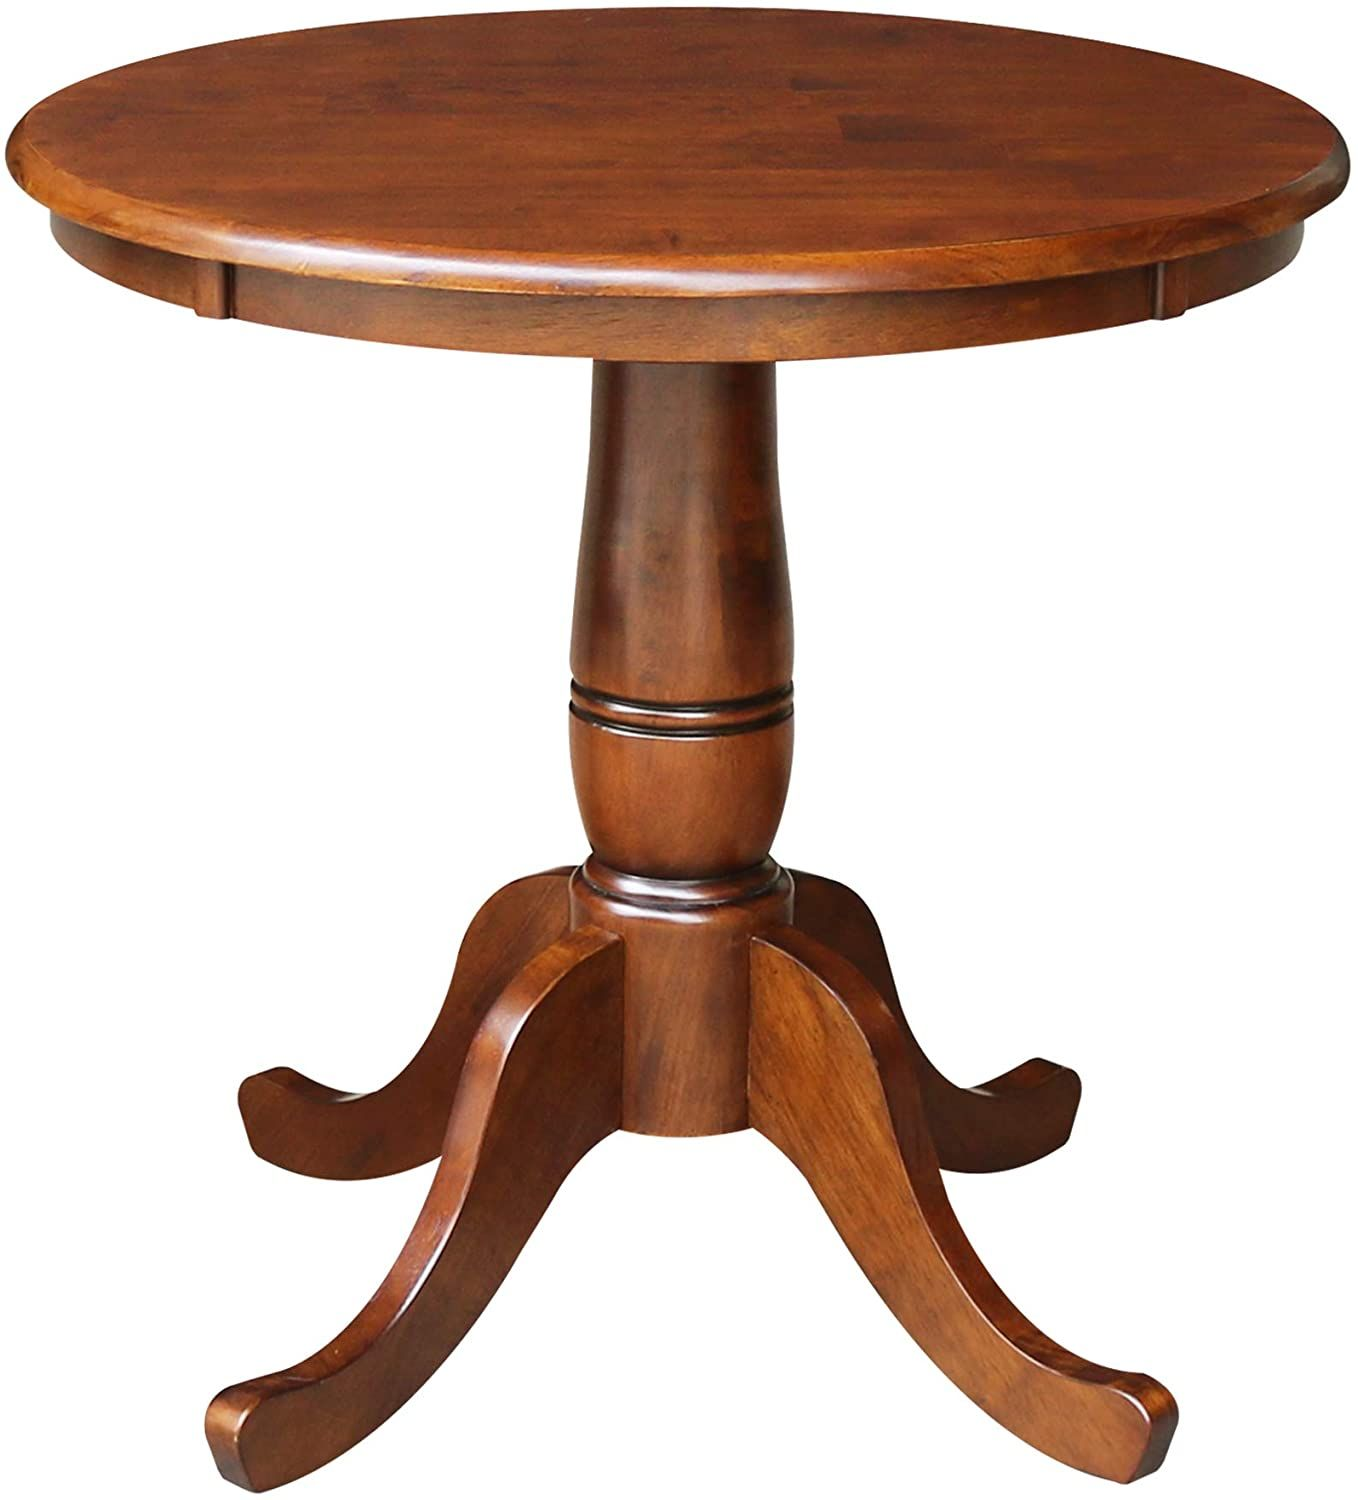 Parawood 30 Inch Round Table Top Set Natural Unfinished Furniture Parawood Natural Wood Table Unfinishedf Round Table Top Table Top Natural Furniture